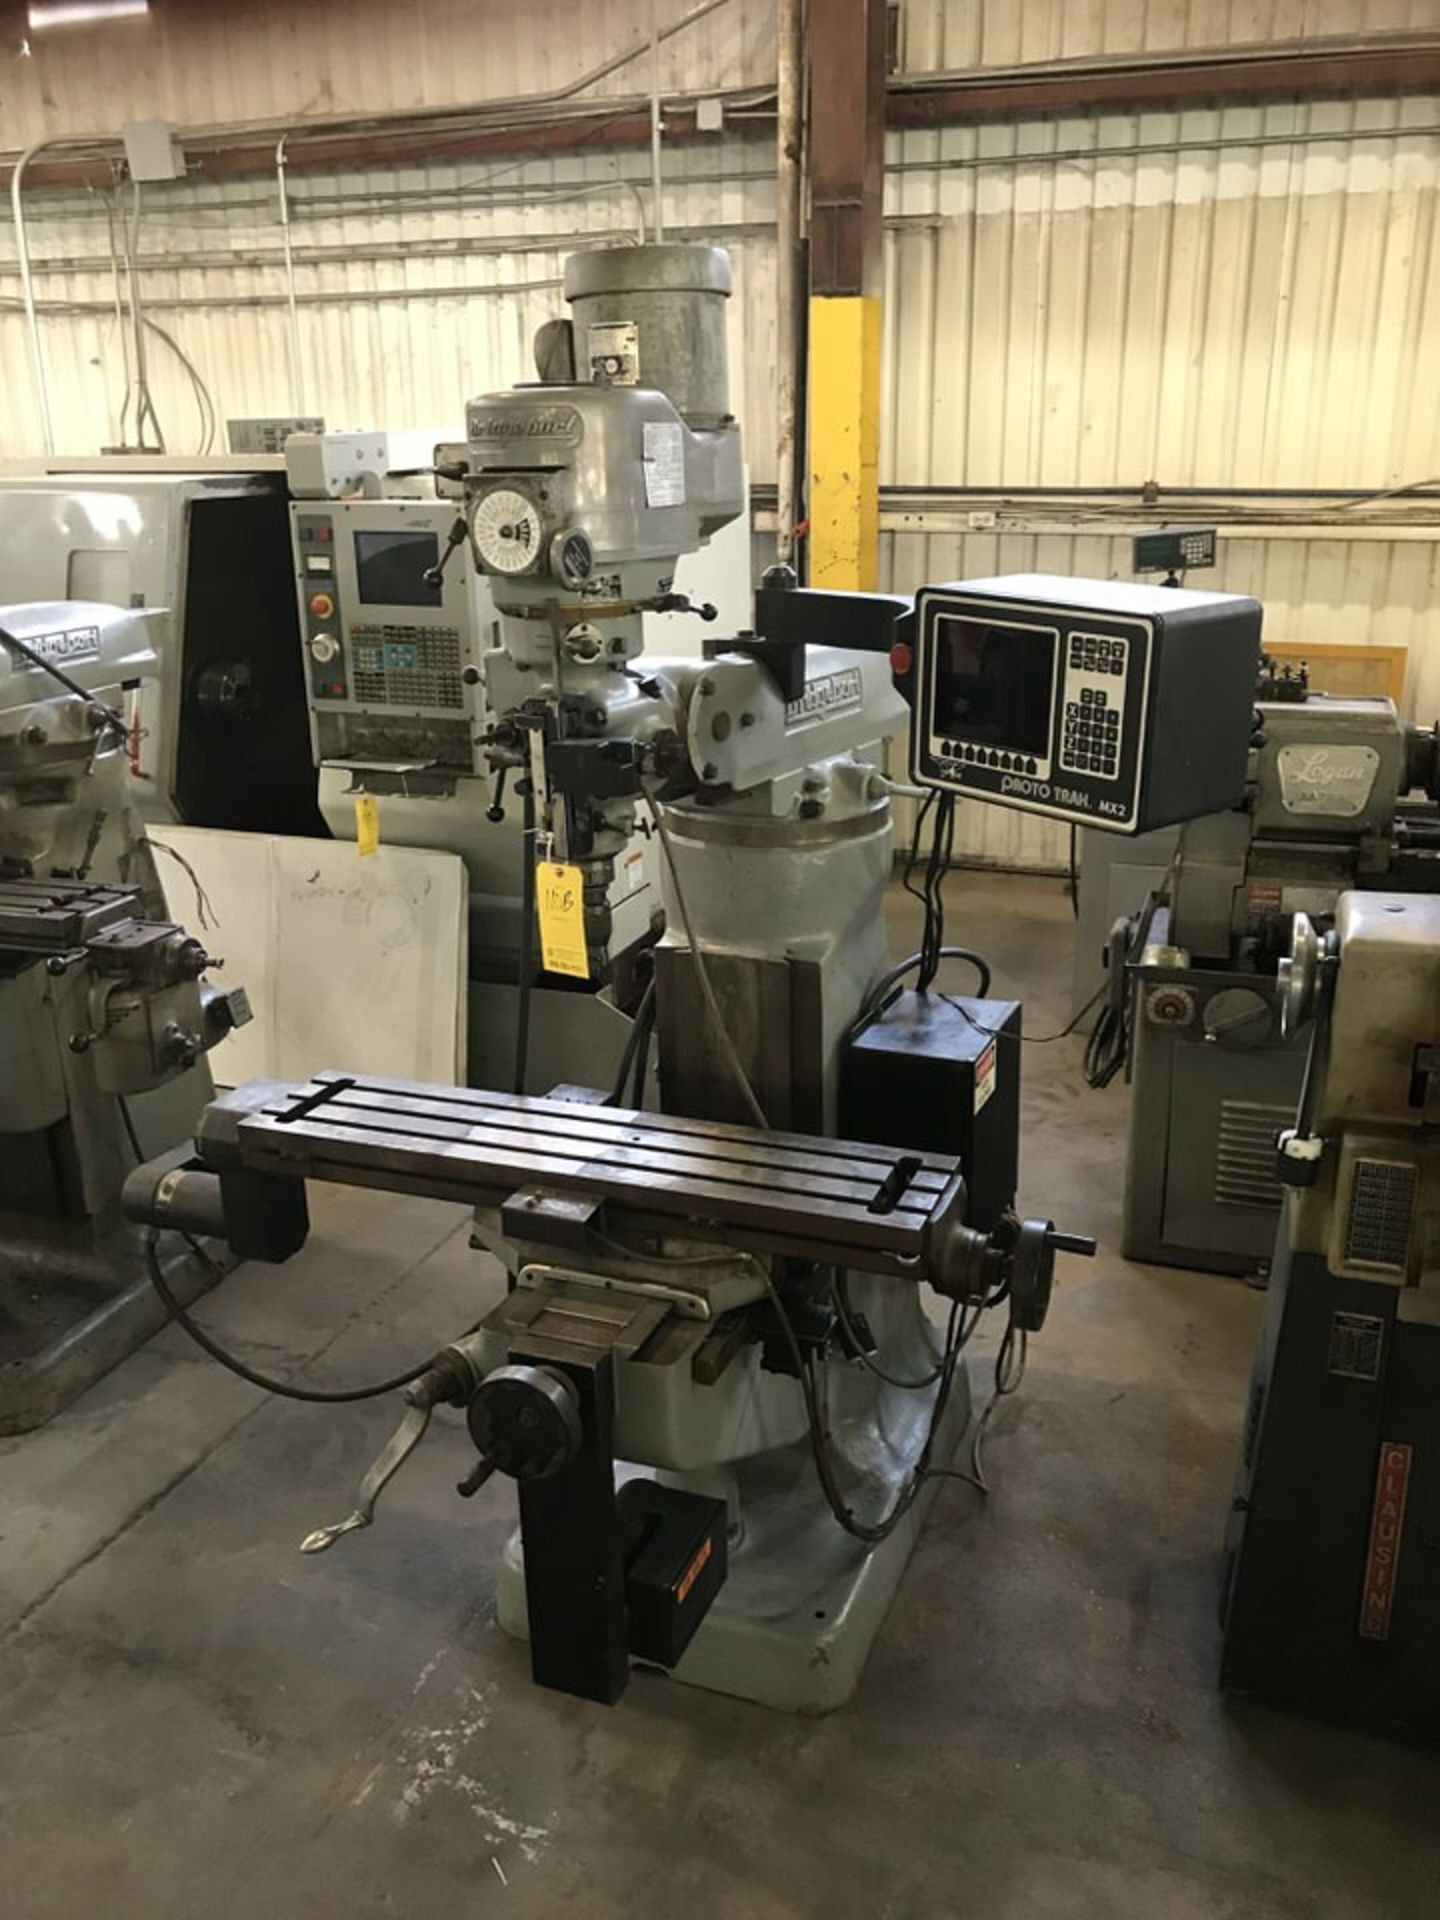 "Lot 110B - Bridgeport Milling Machine, 9"" x 42"" Table, 5"" Quill, RPM: 60-4,200, Proto Trak MX2 DRO System ("